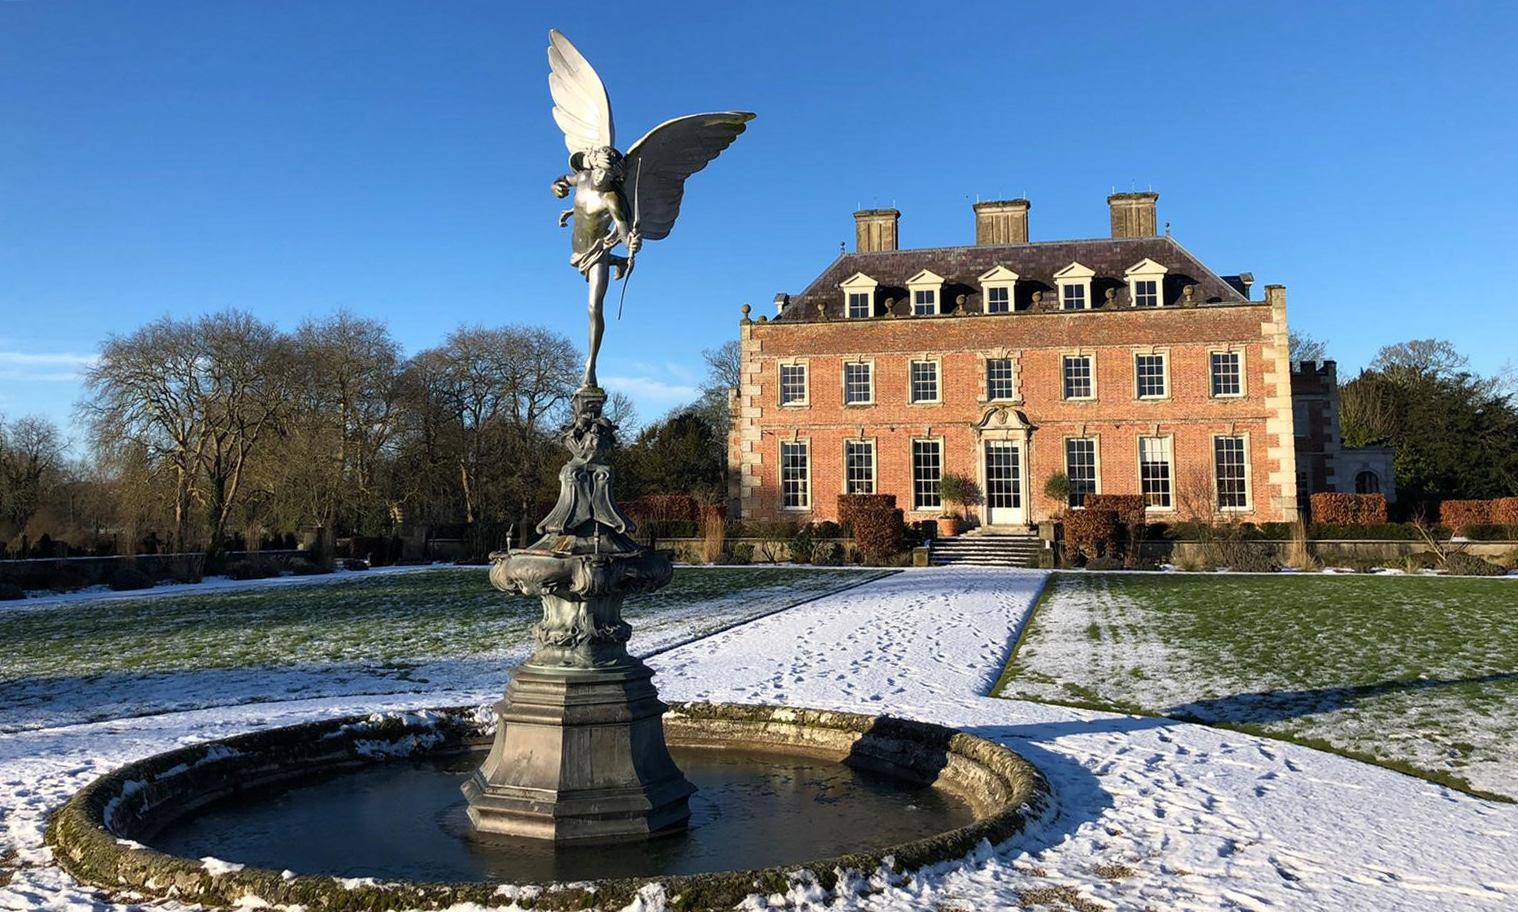 A picture of St Giles House in the snow